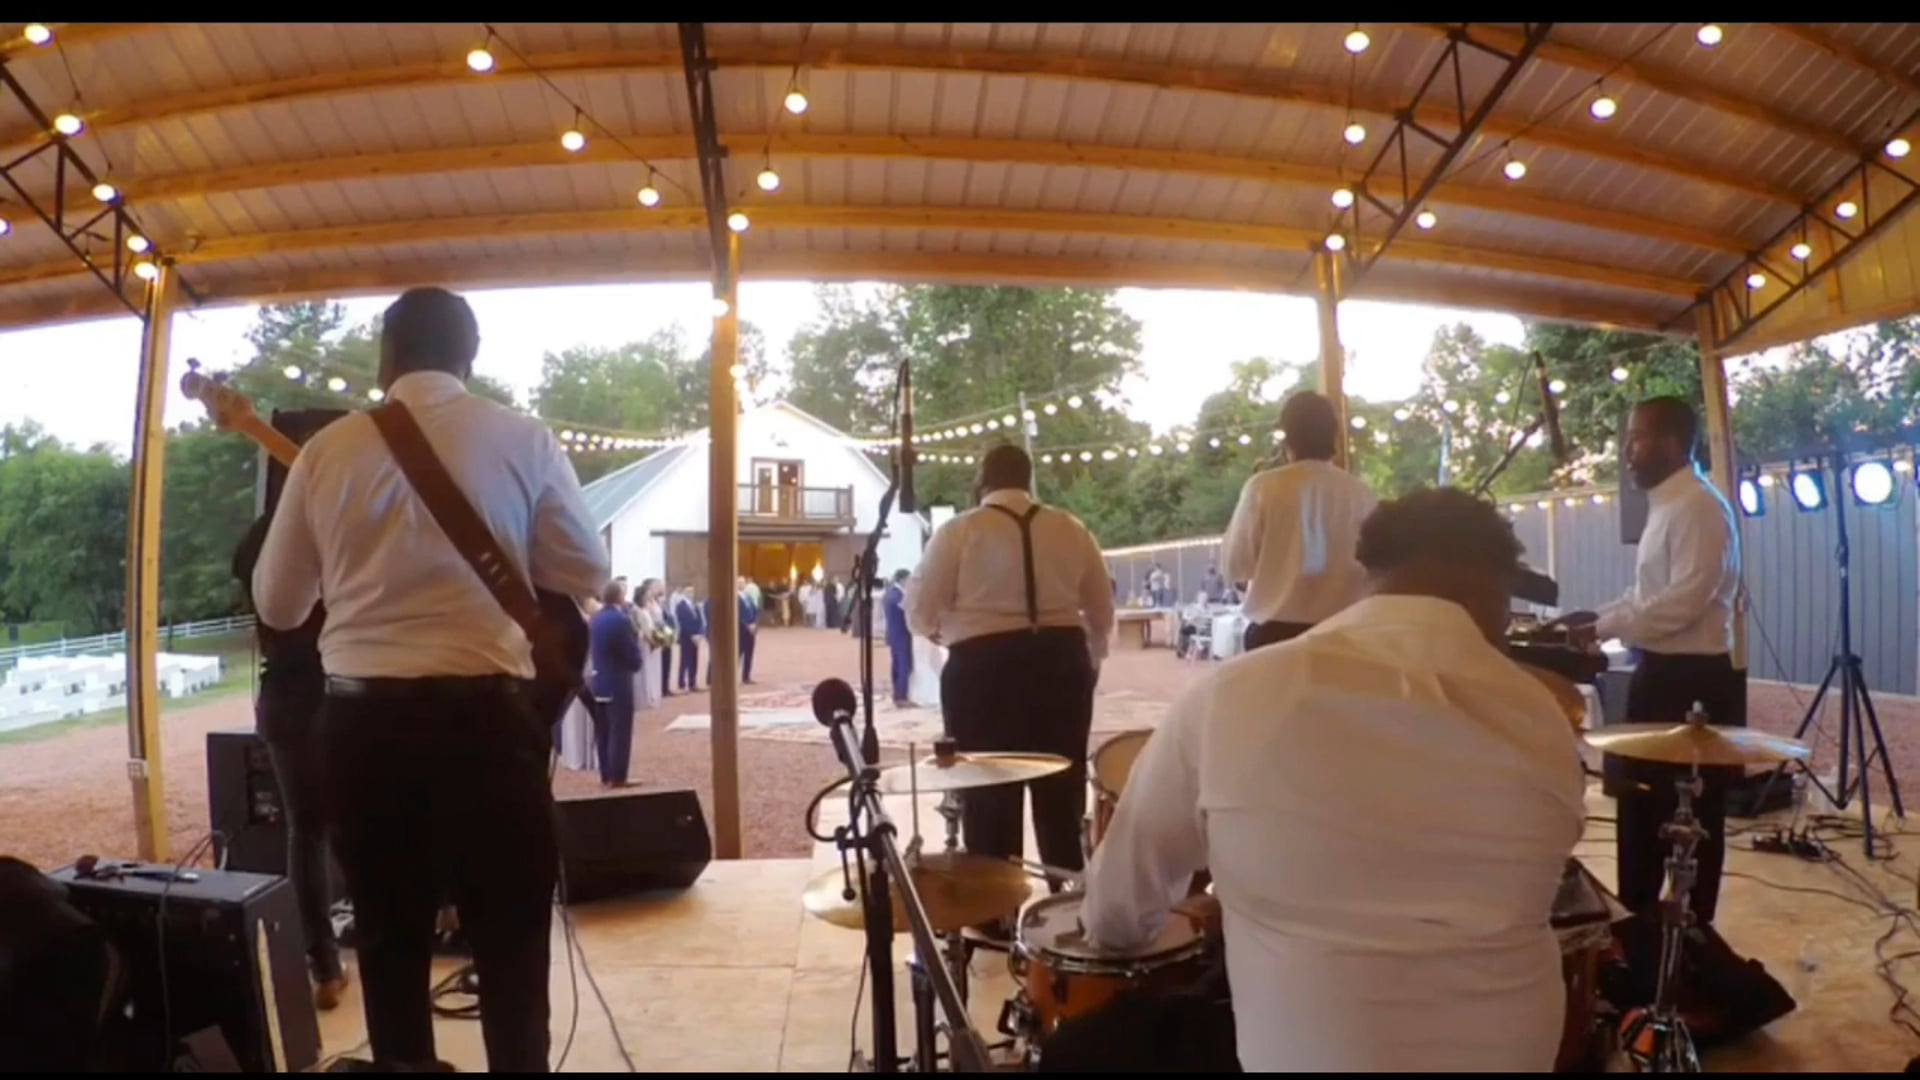 Official Clutch Band performing First Dance at Wedding Reception